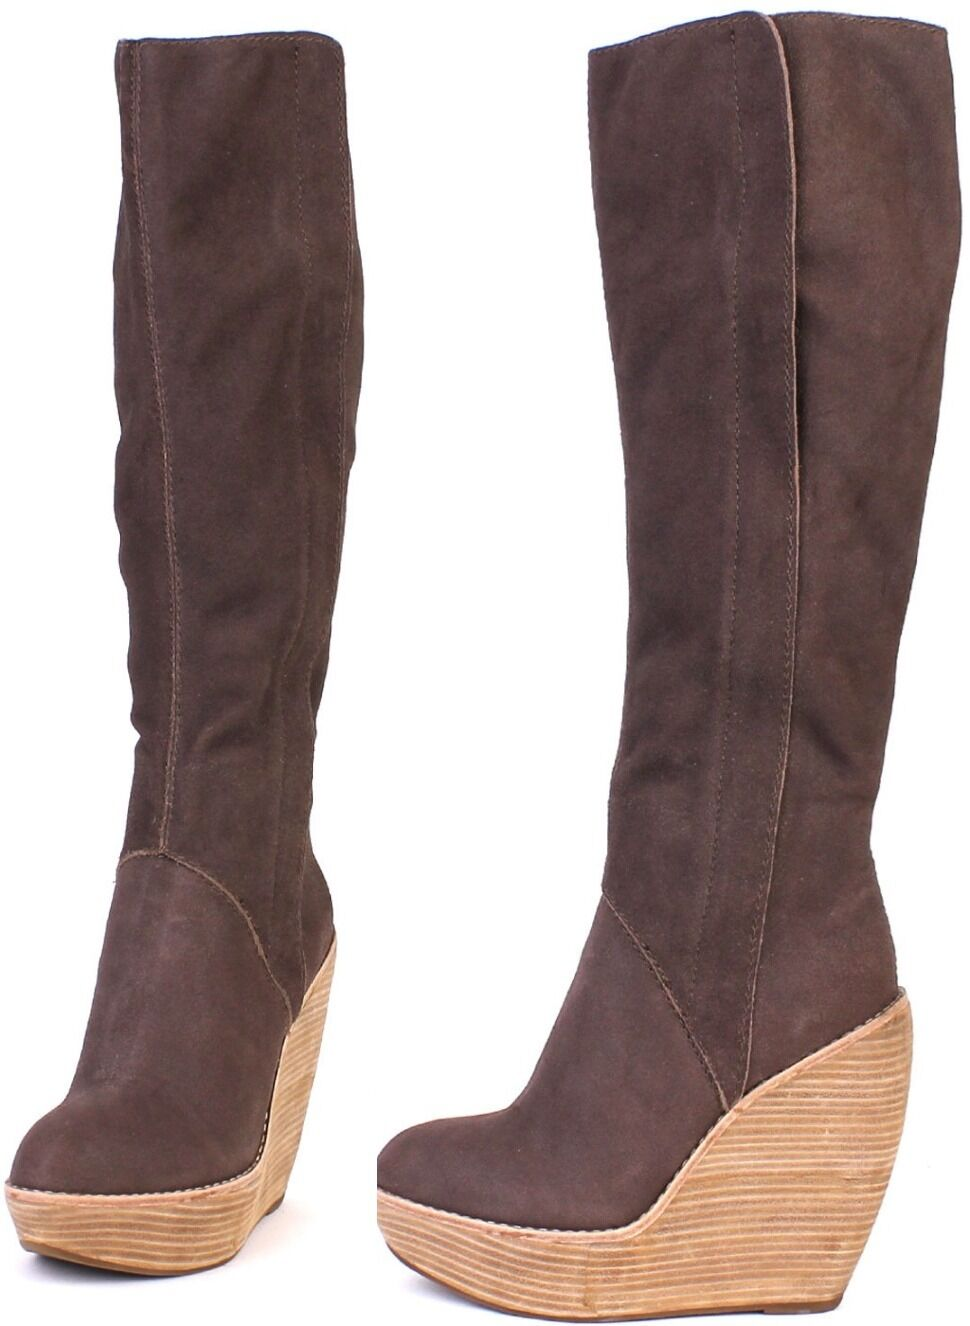 Joe's Jeans Glider Brown Knee High Boot  345 Pelle Shoes NEW tall boots